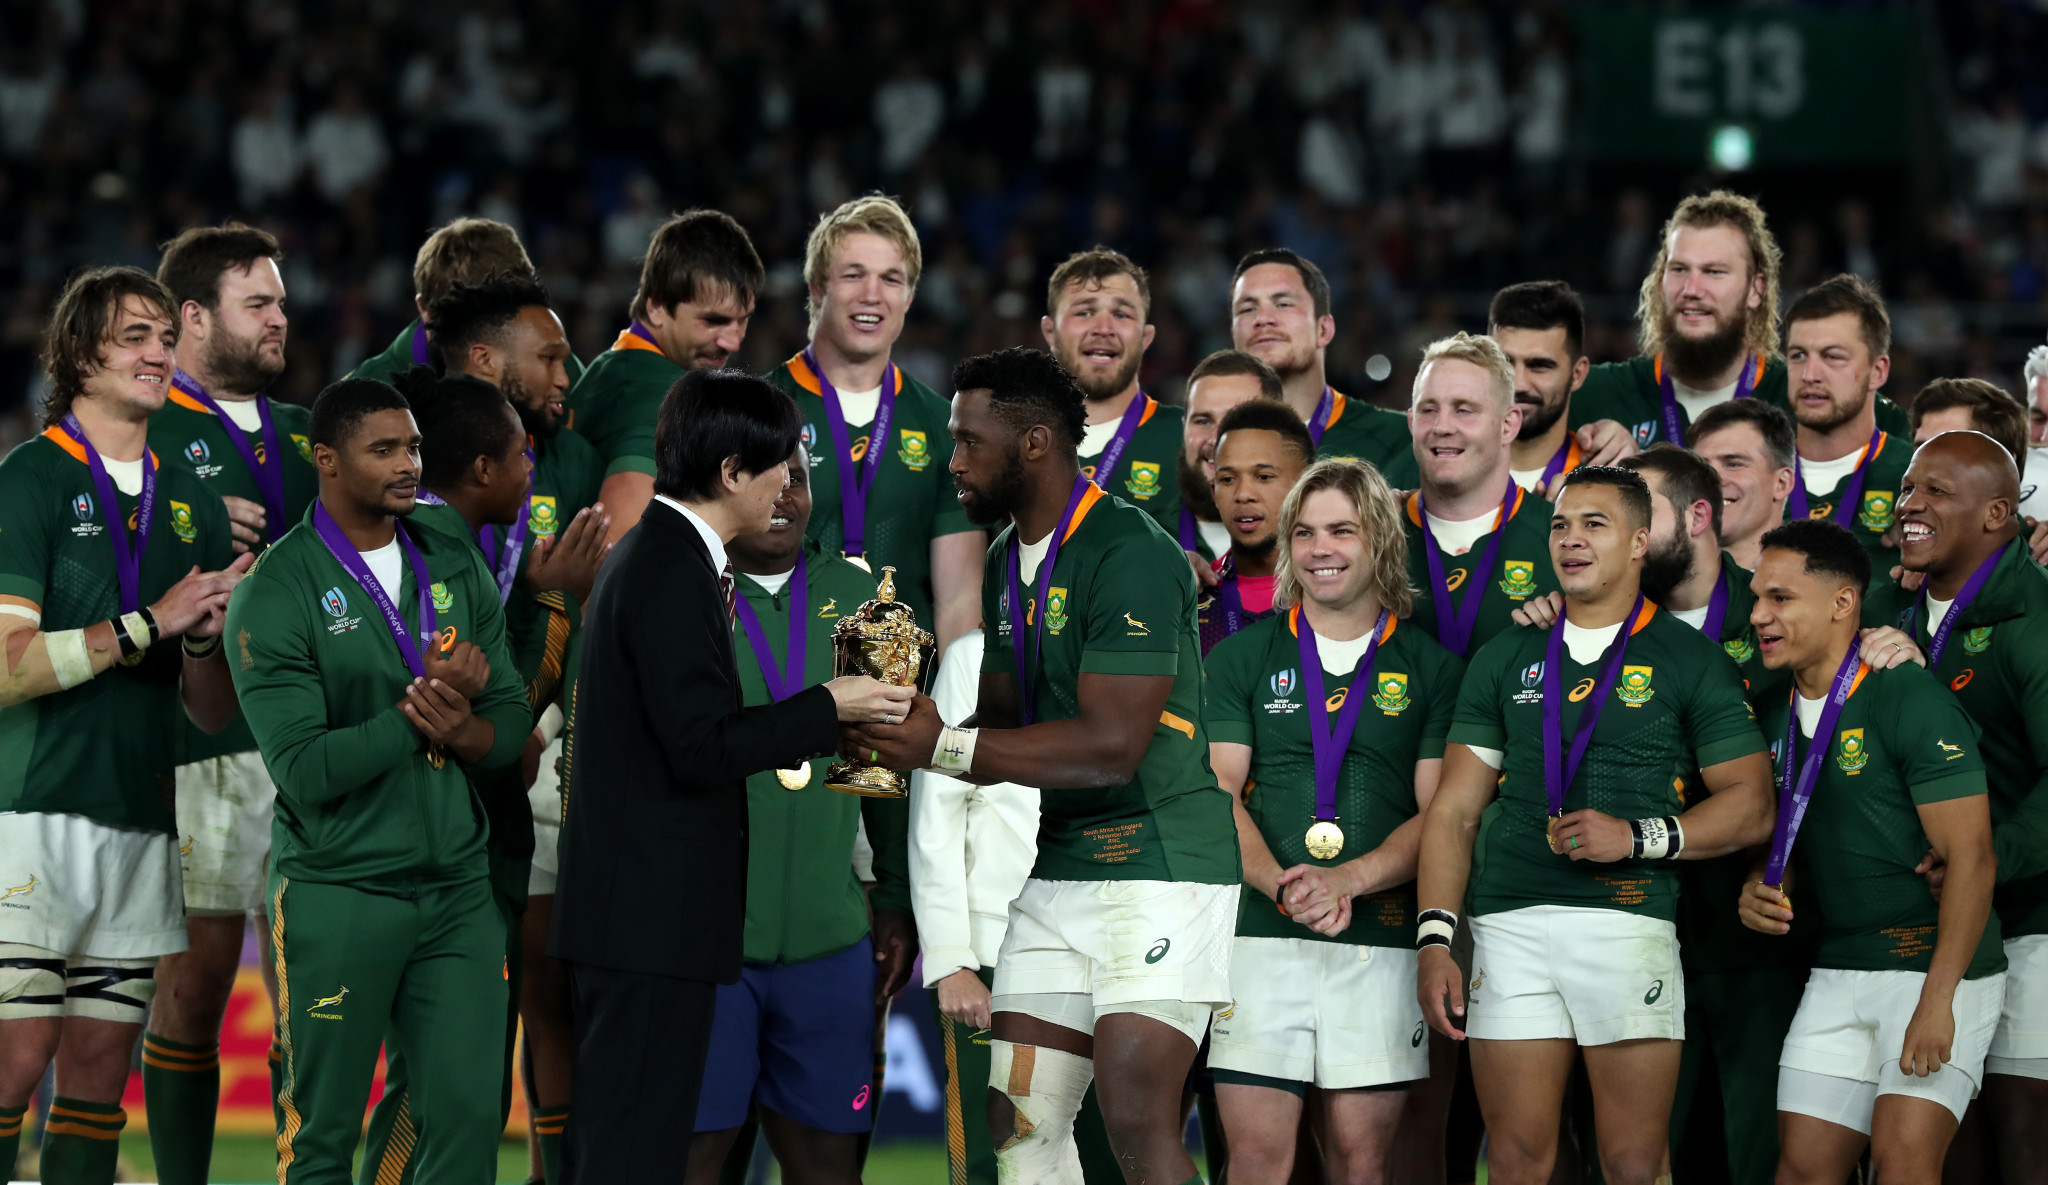 South Africa Rugby approve plan to reduce budget by £53 million